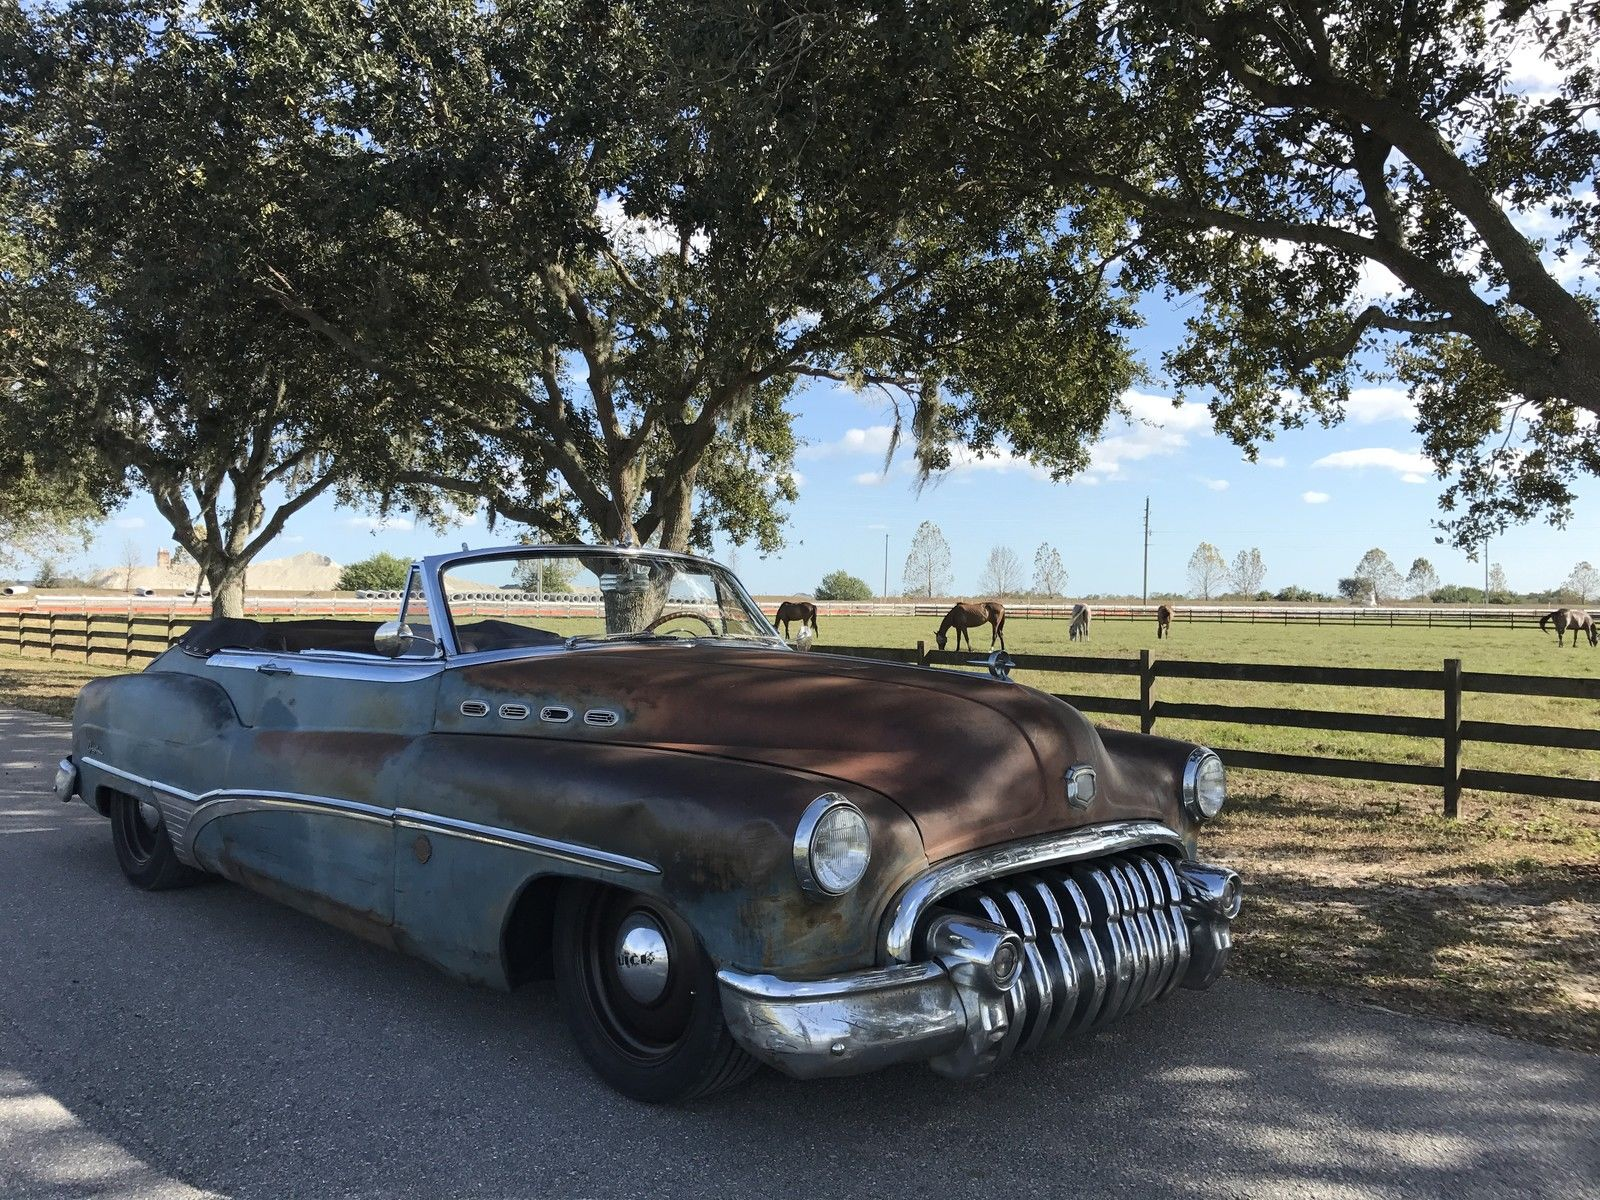 1950 Buick Roadmaster ICON Derelict 3/4 front shade horses